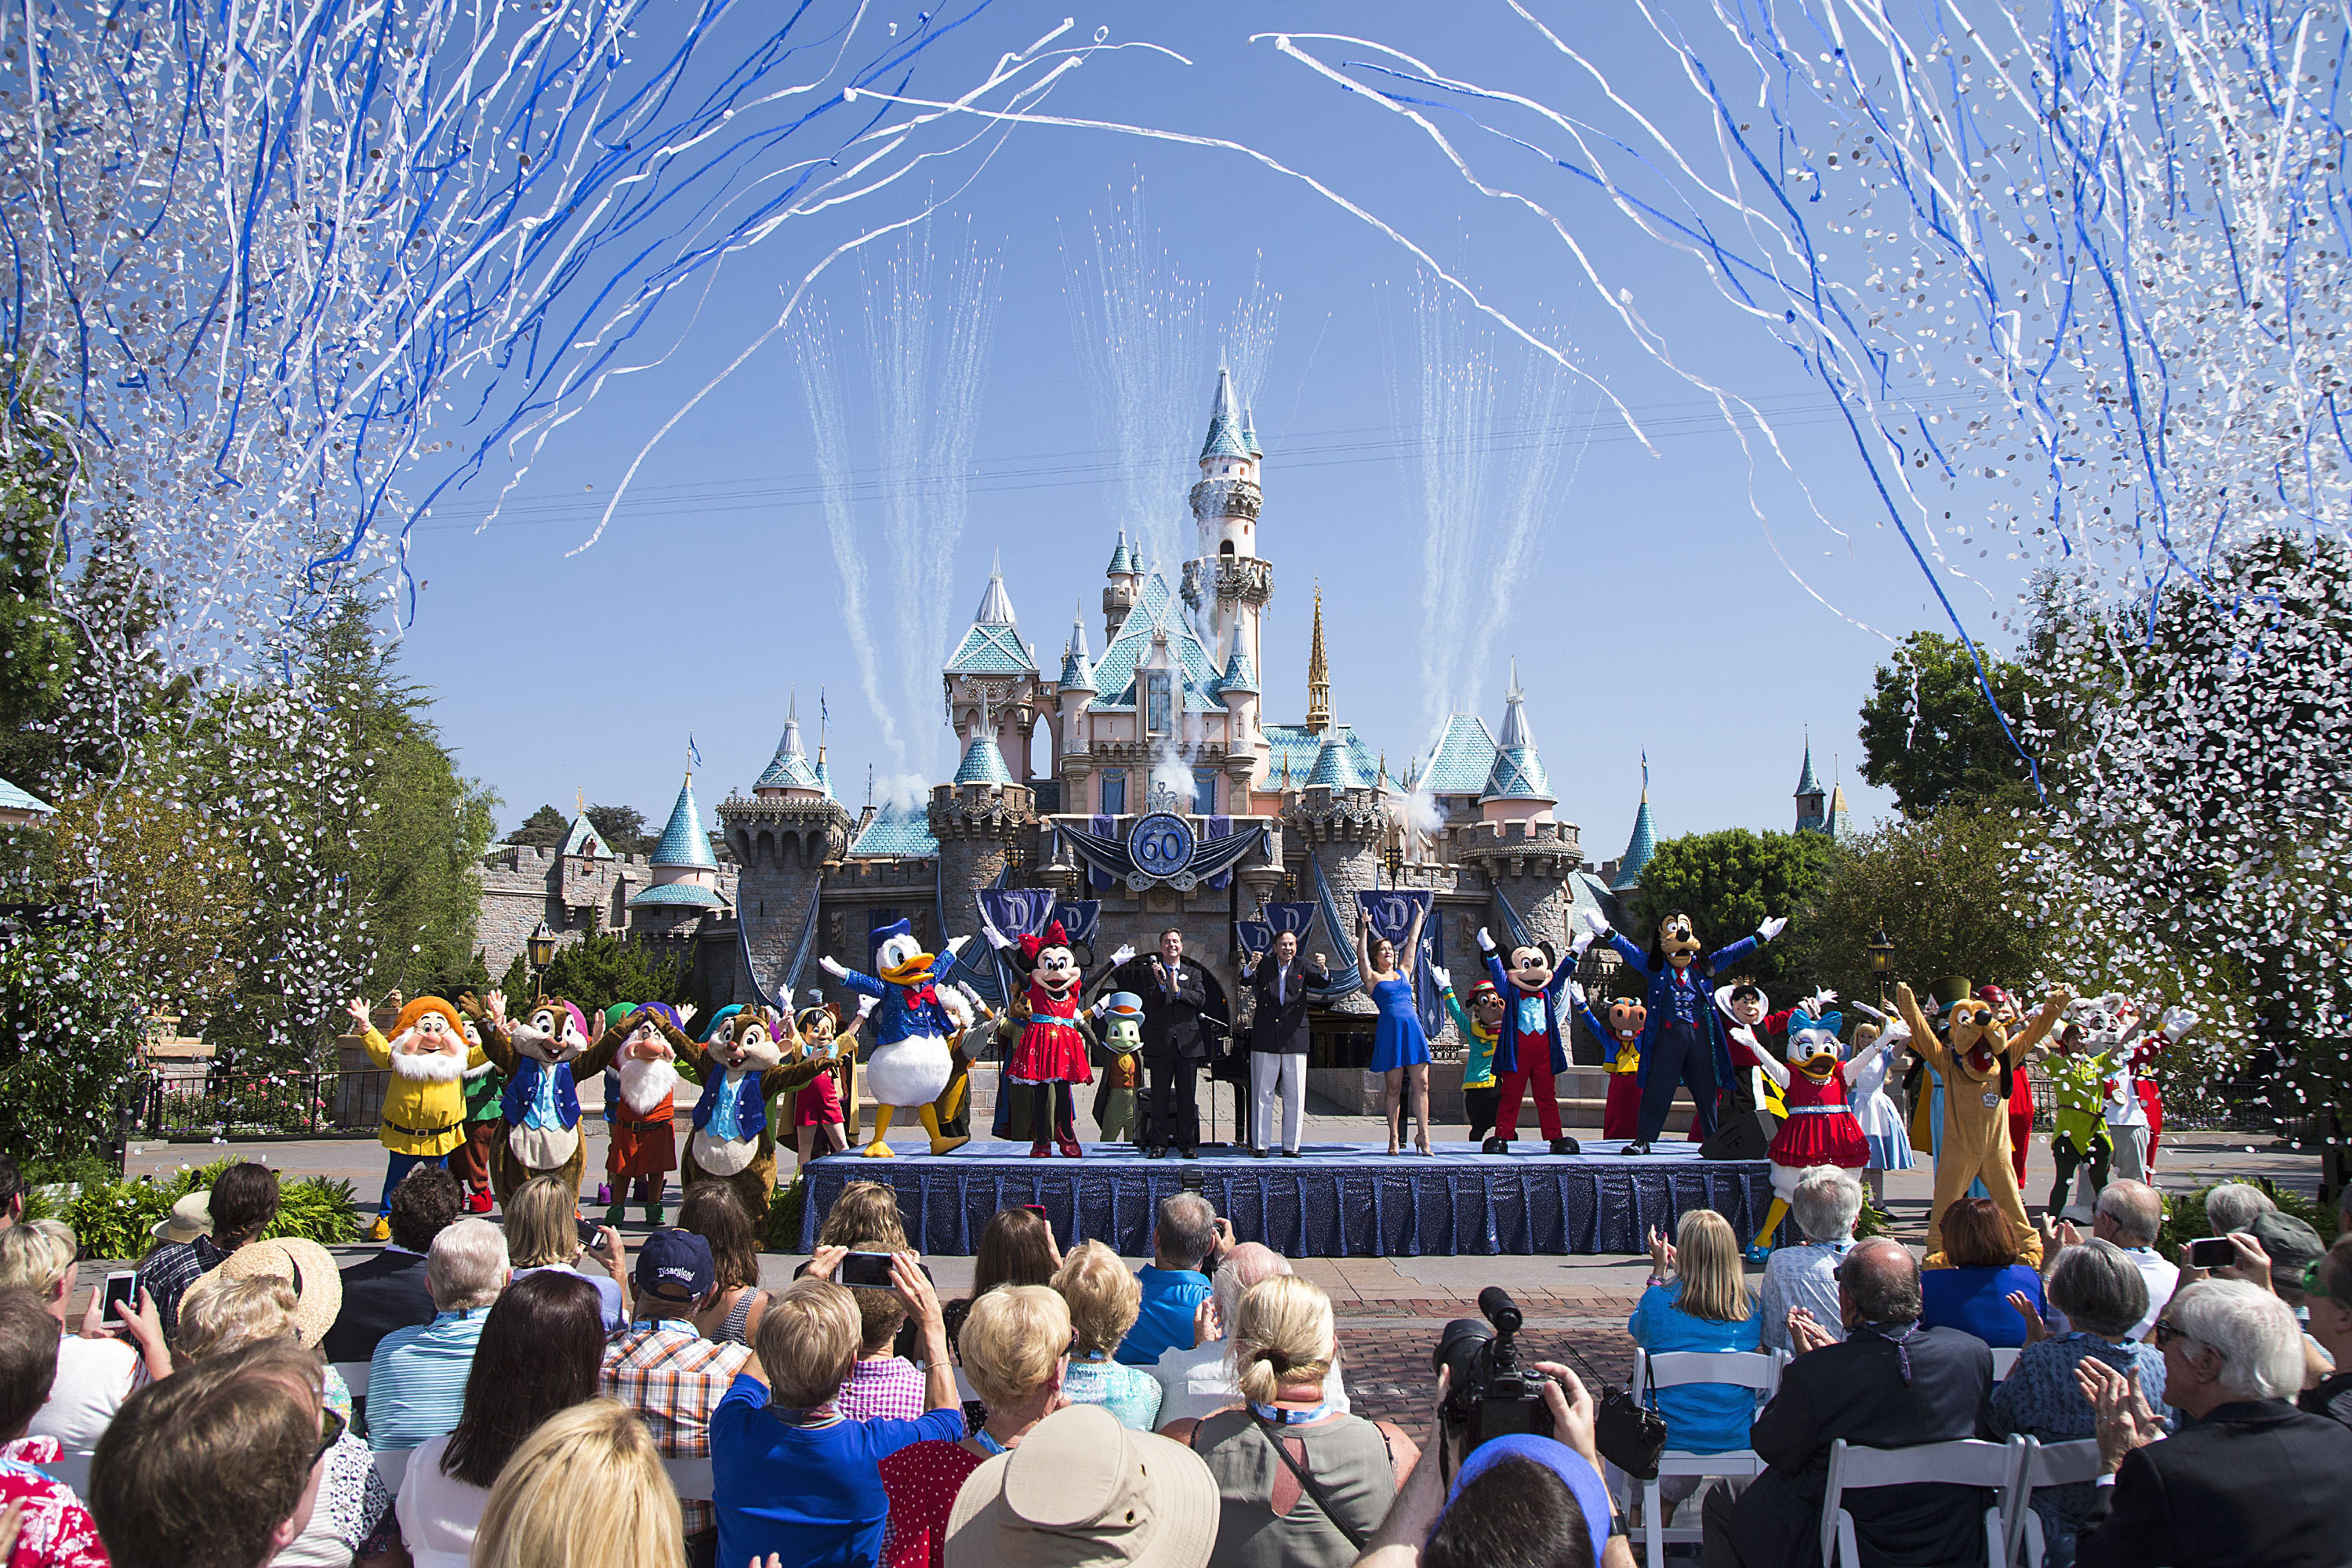 Mickey Mouse and his friends celebrate the 60th anniversary of Disneyland park during a ceremony at Sleeping Beauty Castle in Anaheim, Calif. on Friday, July 17